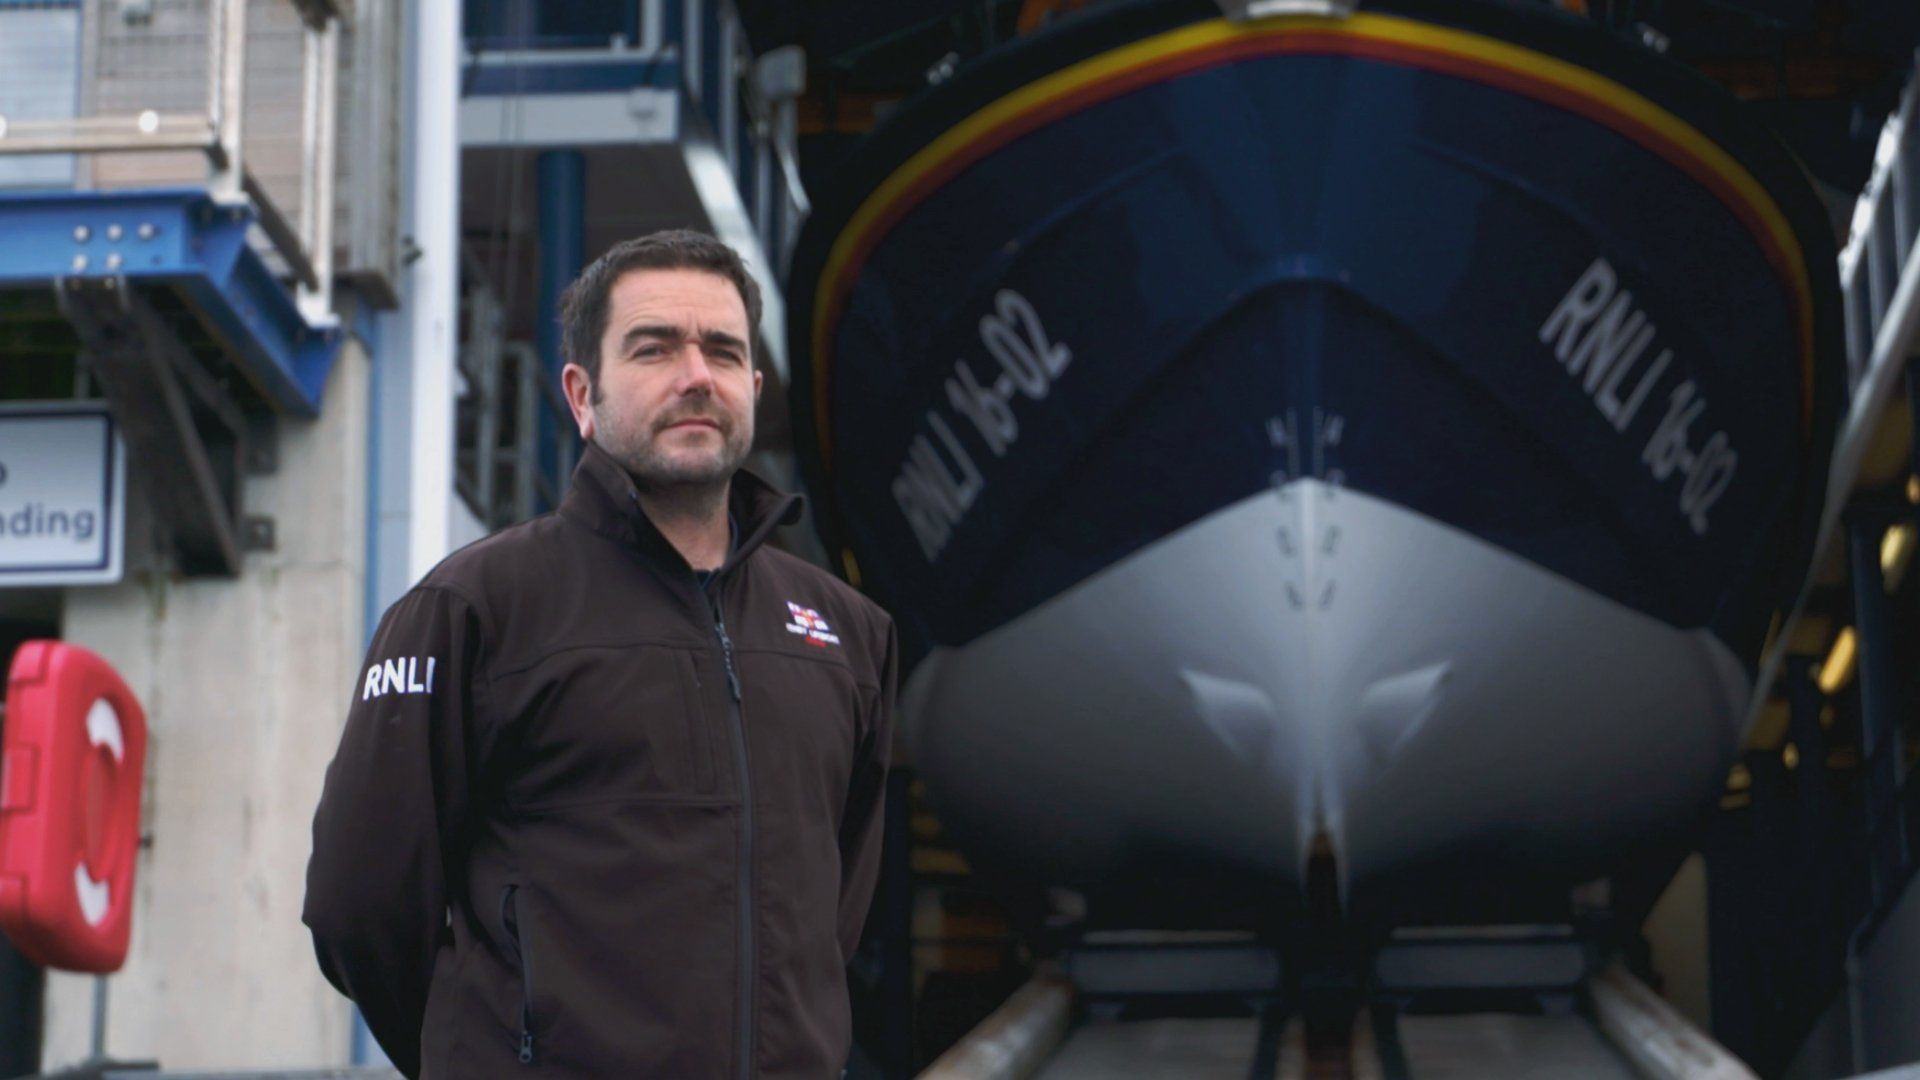 Phil and his Lifeboat. Puma jacket, Athletic jacket, Tenby